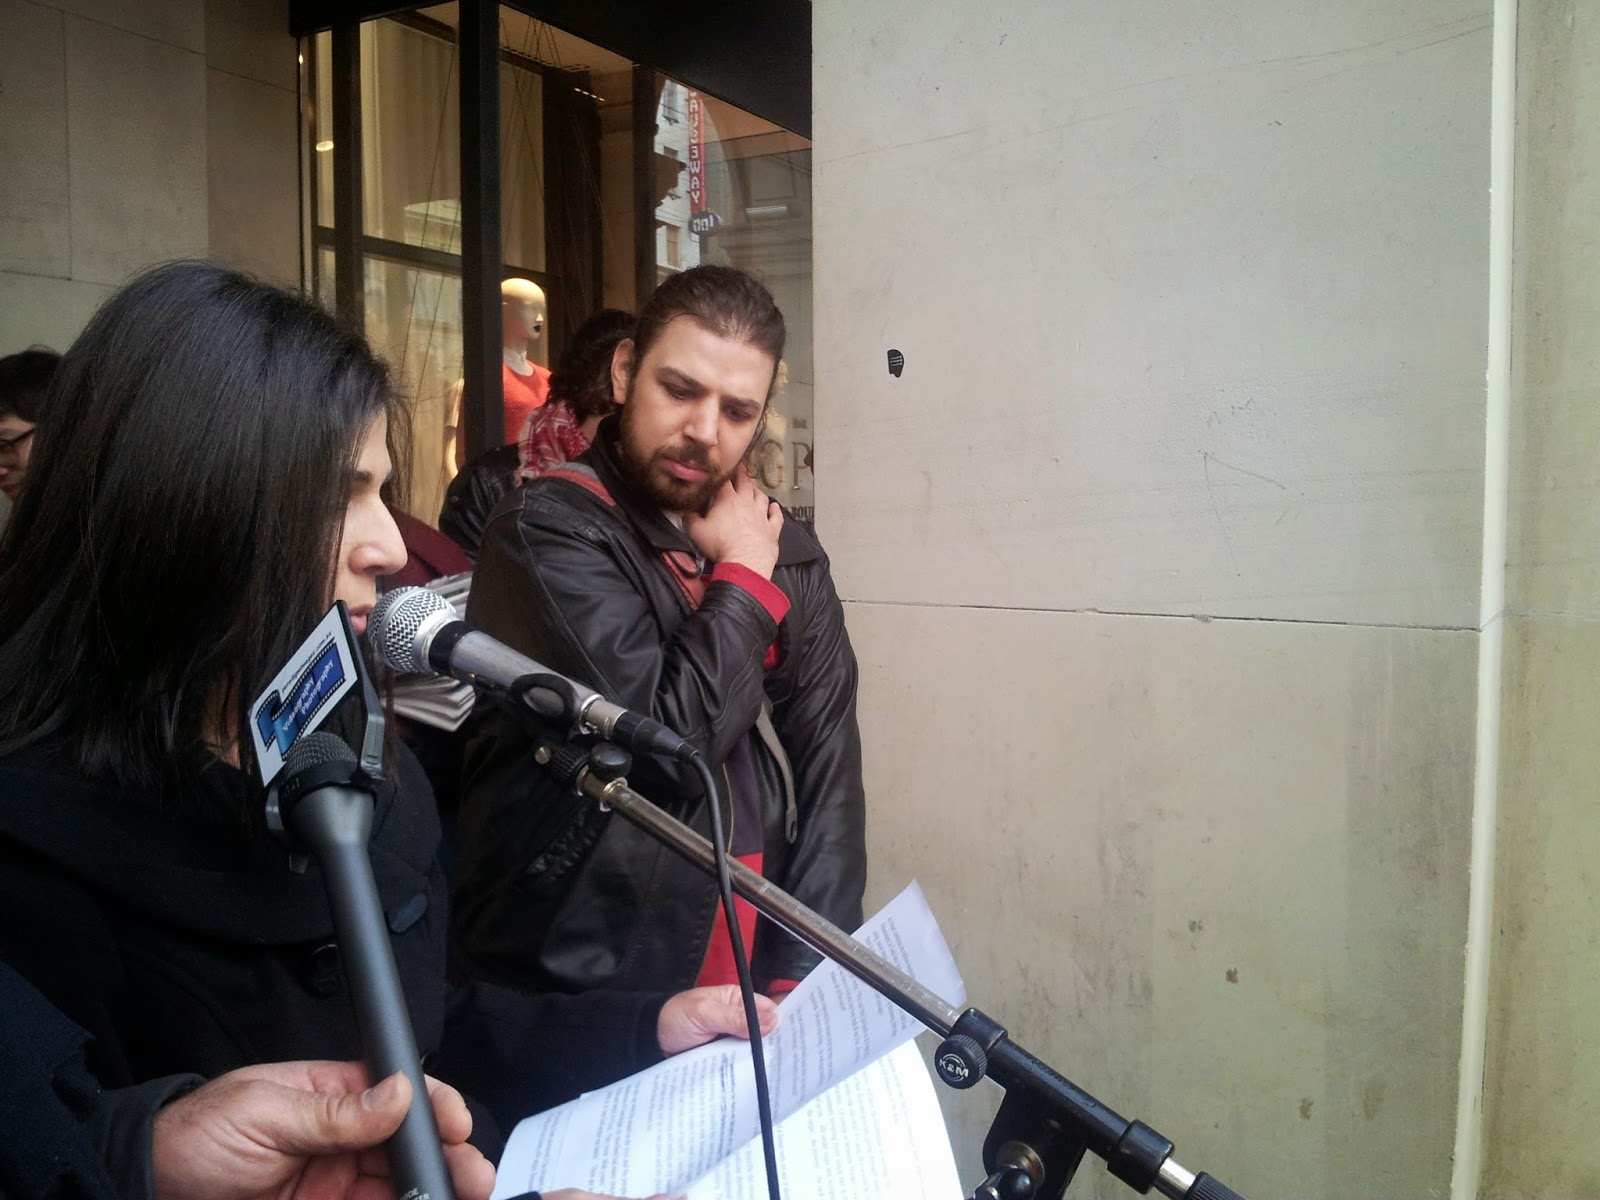 live from occupied photo essay melbourne rally against all photos by kim bullimore